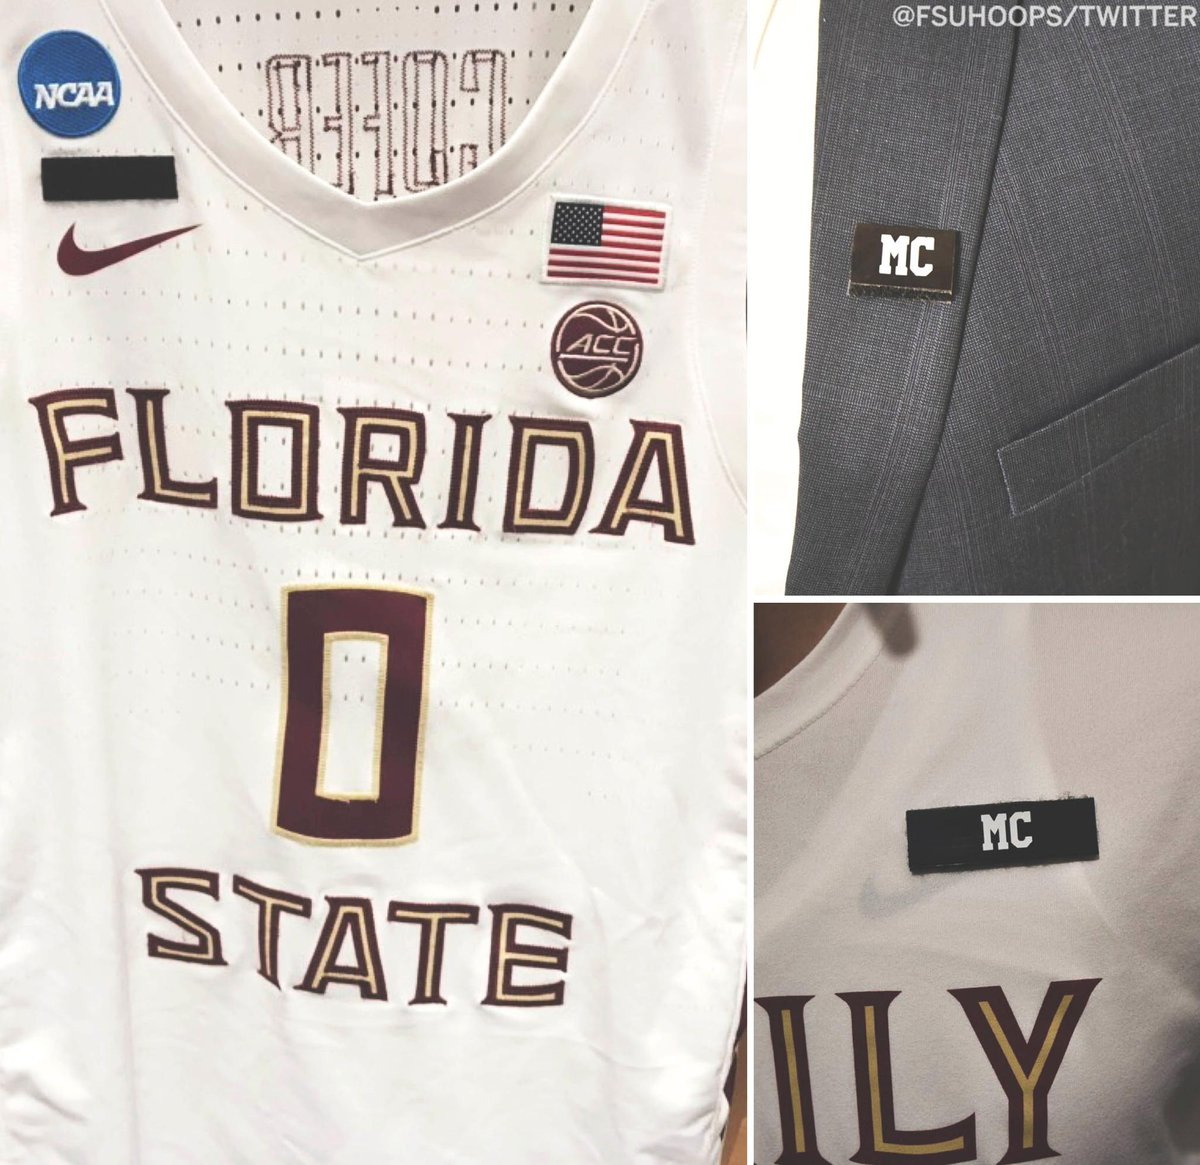 """After Thursday's game, @FSUHoops' Phil Cofer was told his father, Michael Cofer, passed away.  Tonight, the Seminoles are honoring Cofer's dad with """"MC"""" patches on their jerseys, suits and shirts."""